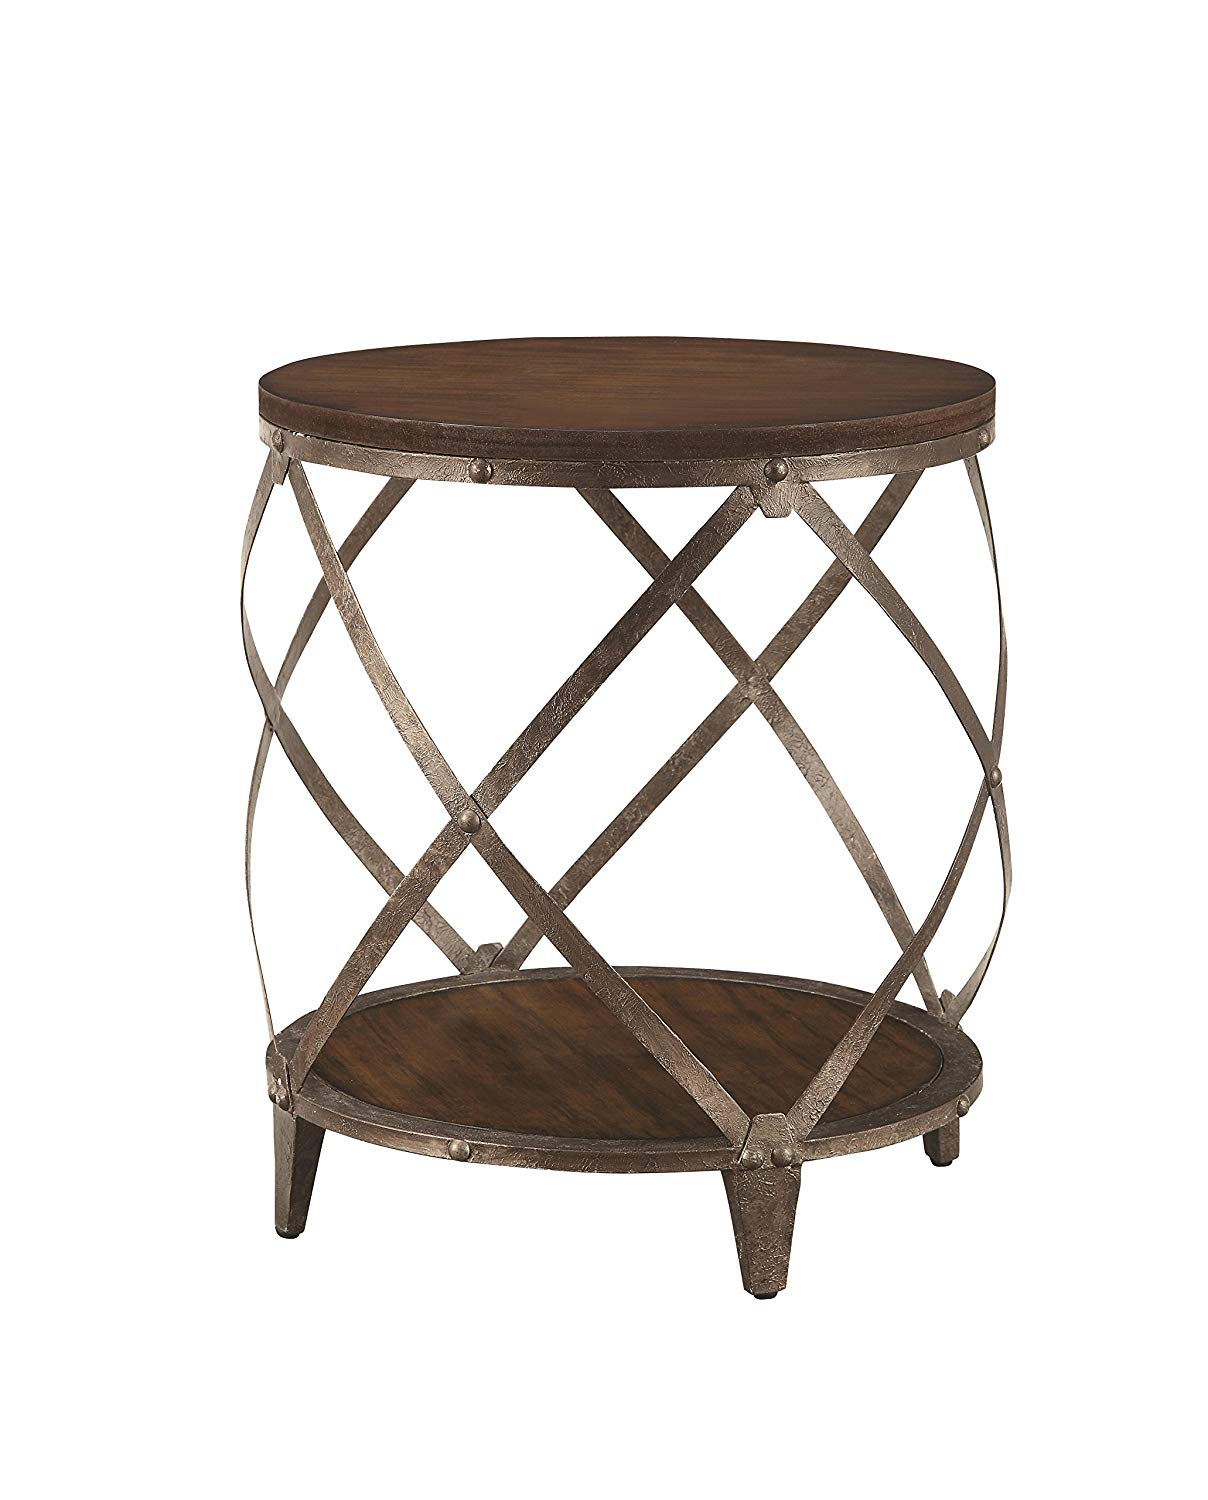 metal accent table with drum shape brown kitchen dining red round jcpenney tablecloths antique lamp mirrored coffee living room side tables storage small wine numeral wall clock